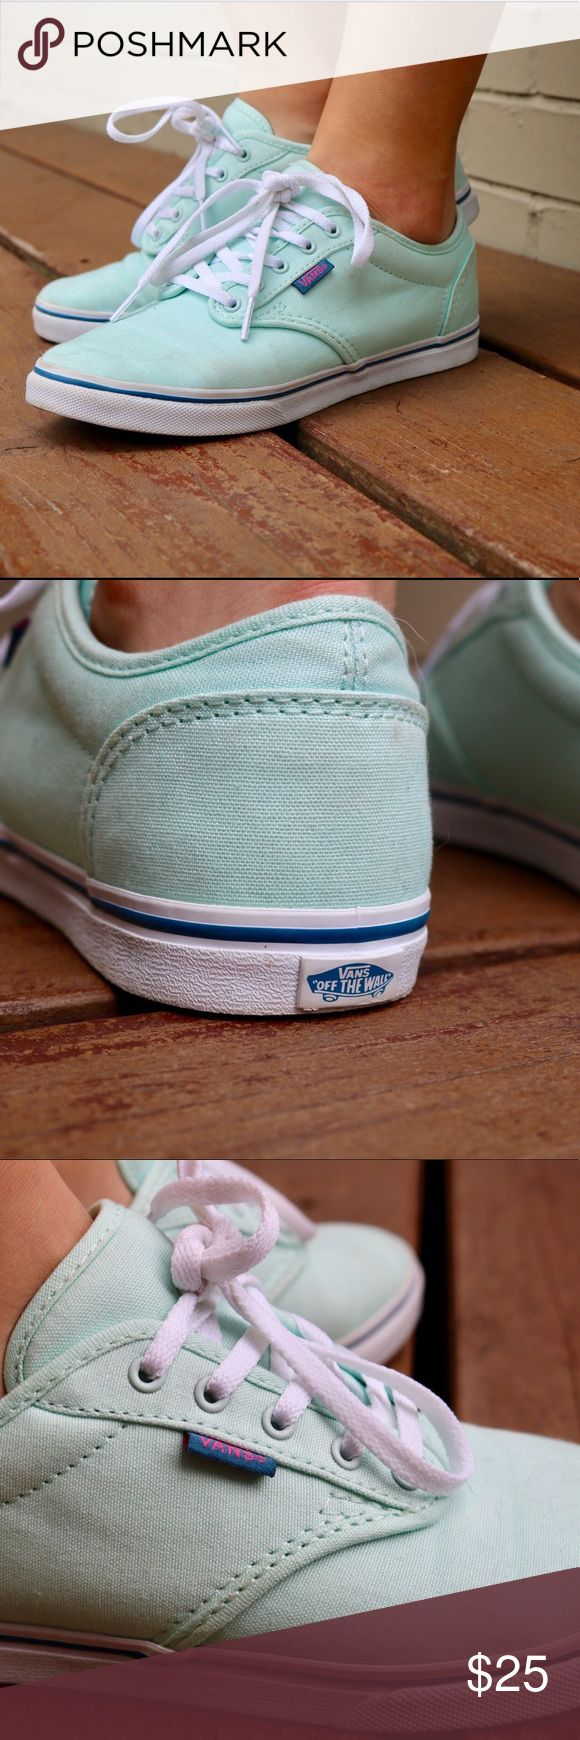 Mint vans Teal vans with white laces, white polkadots on dark blue inside, and white on the bottom with a blue stripe.                                                            ⭐️Great condition, never worn.                                  🚫no trades Vans Shoes Sneakers